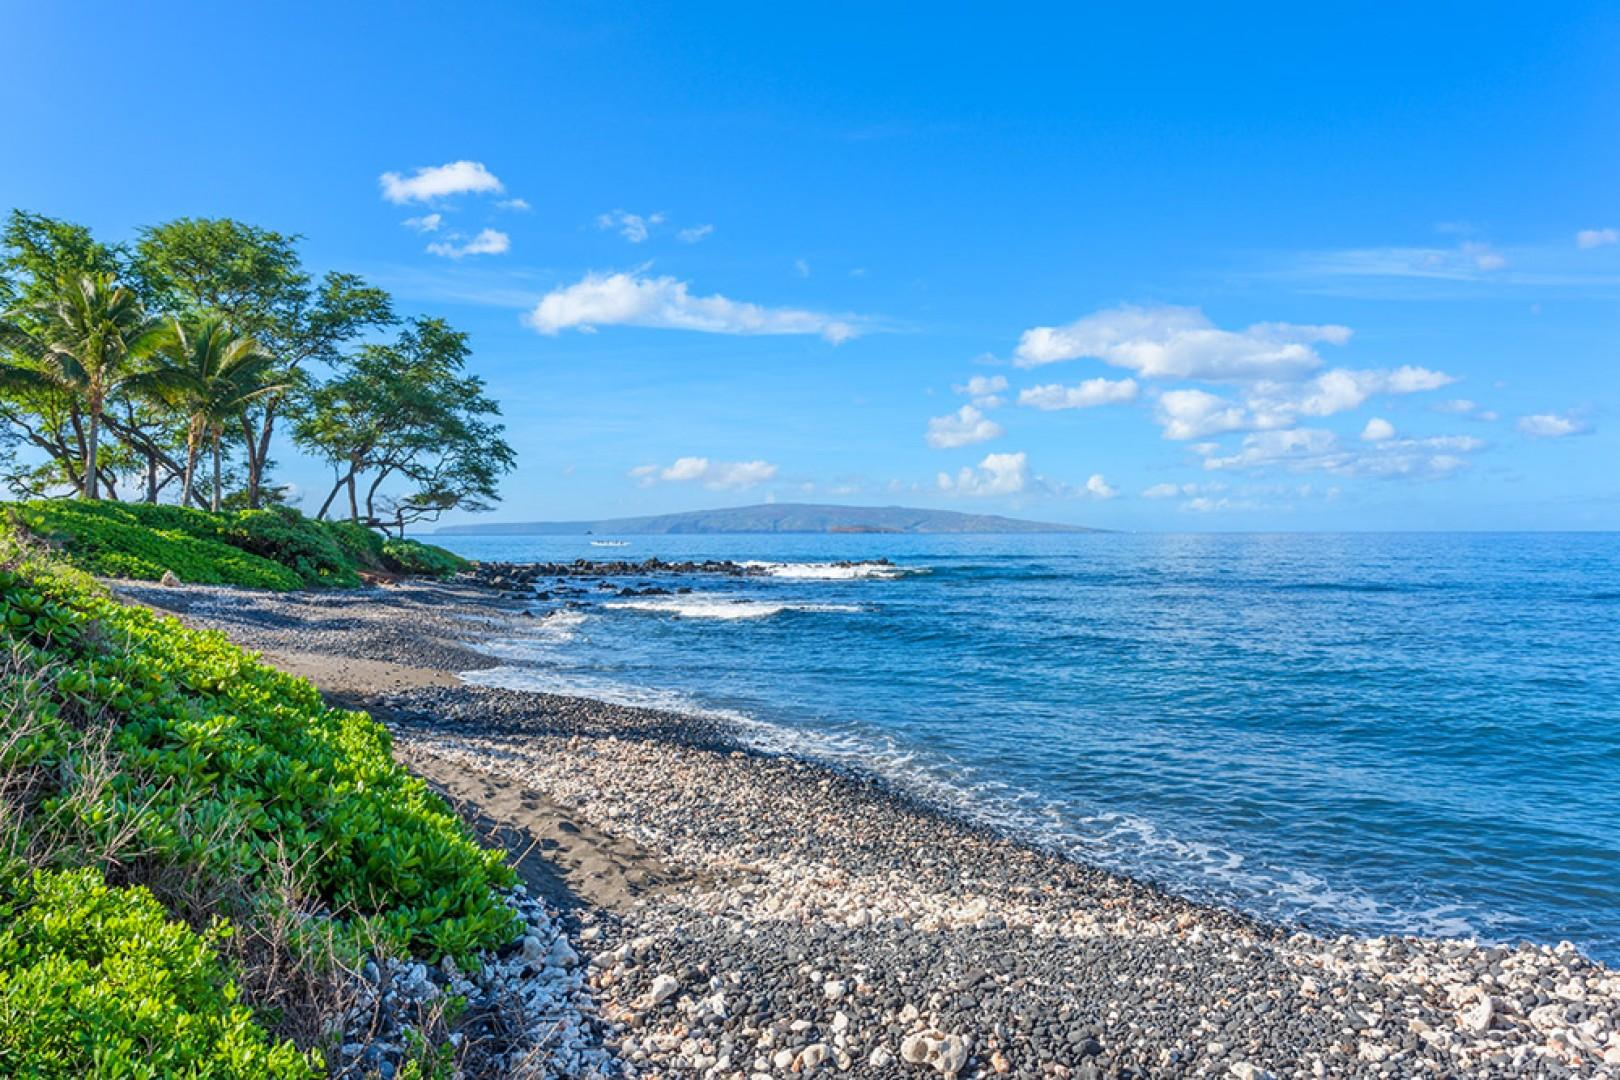 On calm days, it's perfectly fine to enter the water right from the property to enjoy paddle boarding, snorkeling, scuba diving, kayaking and other ocean sports